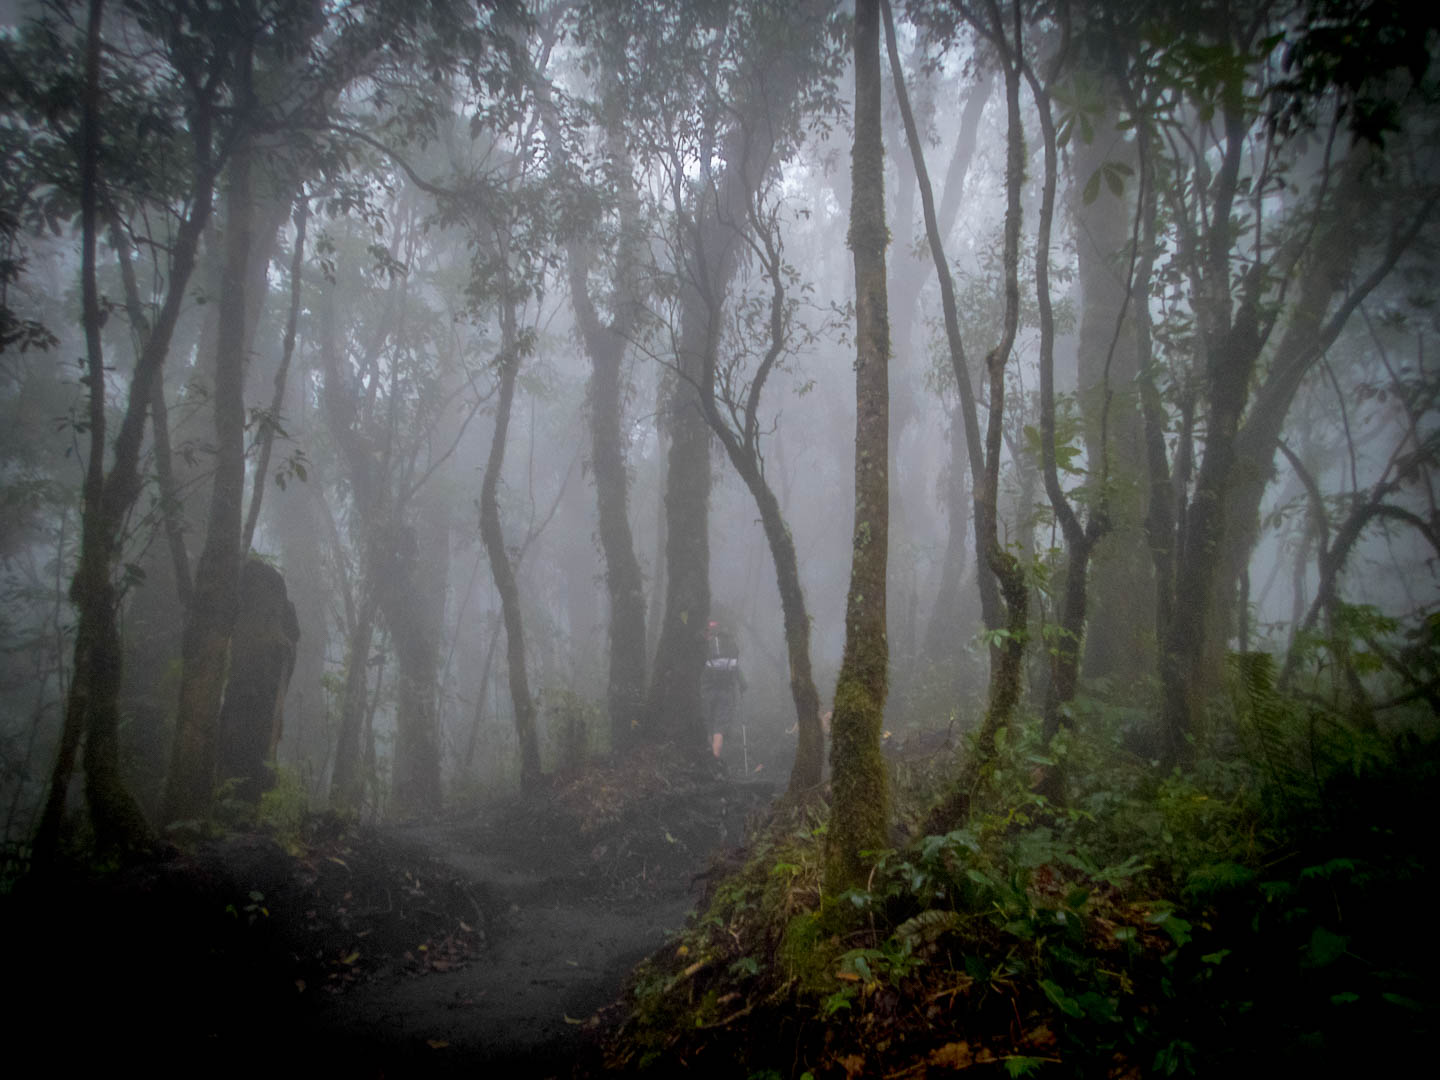 The mysterious forest